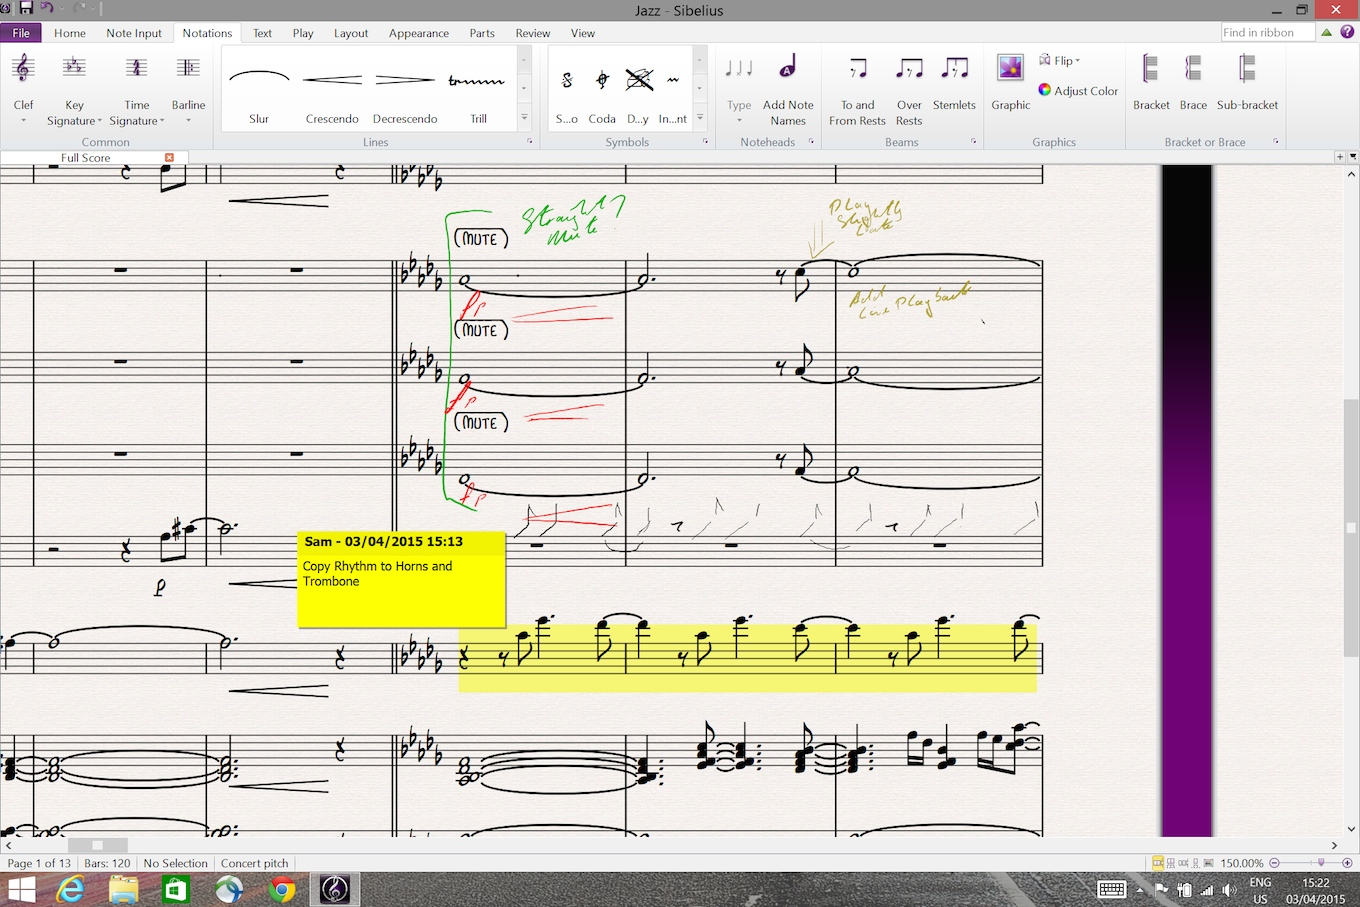 Annotating music in Sibelius (promotional image provided by Avid)